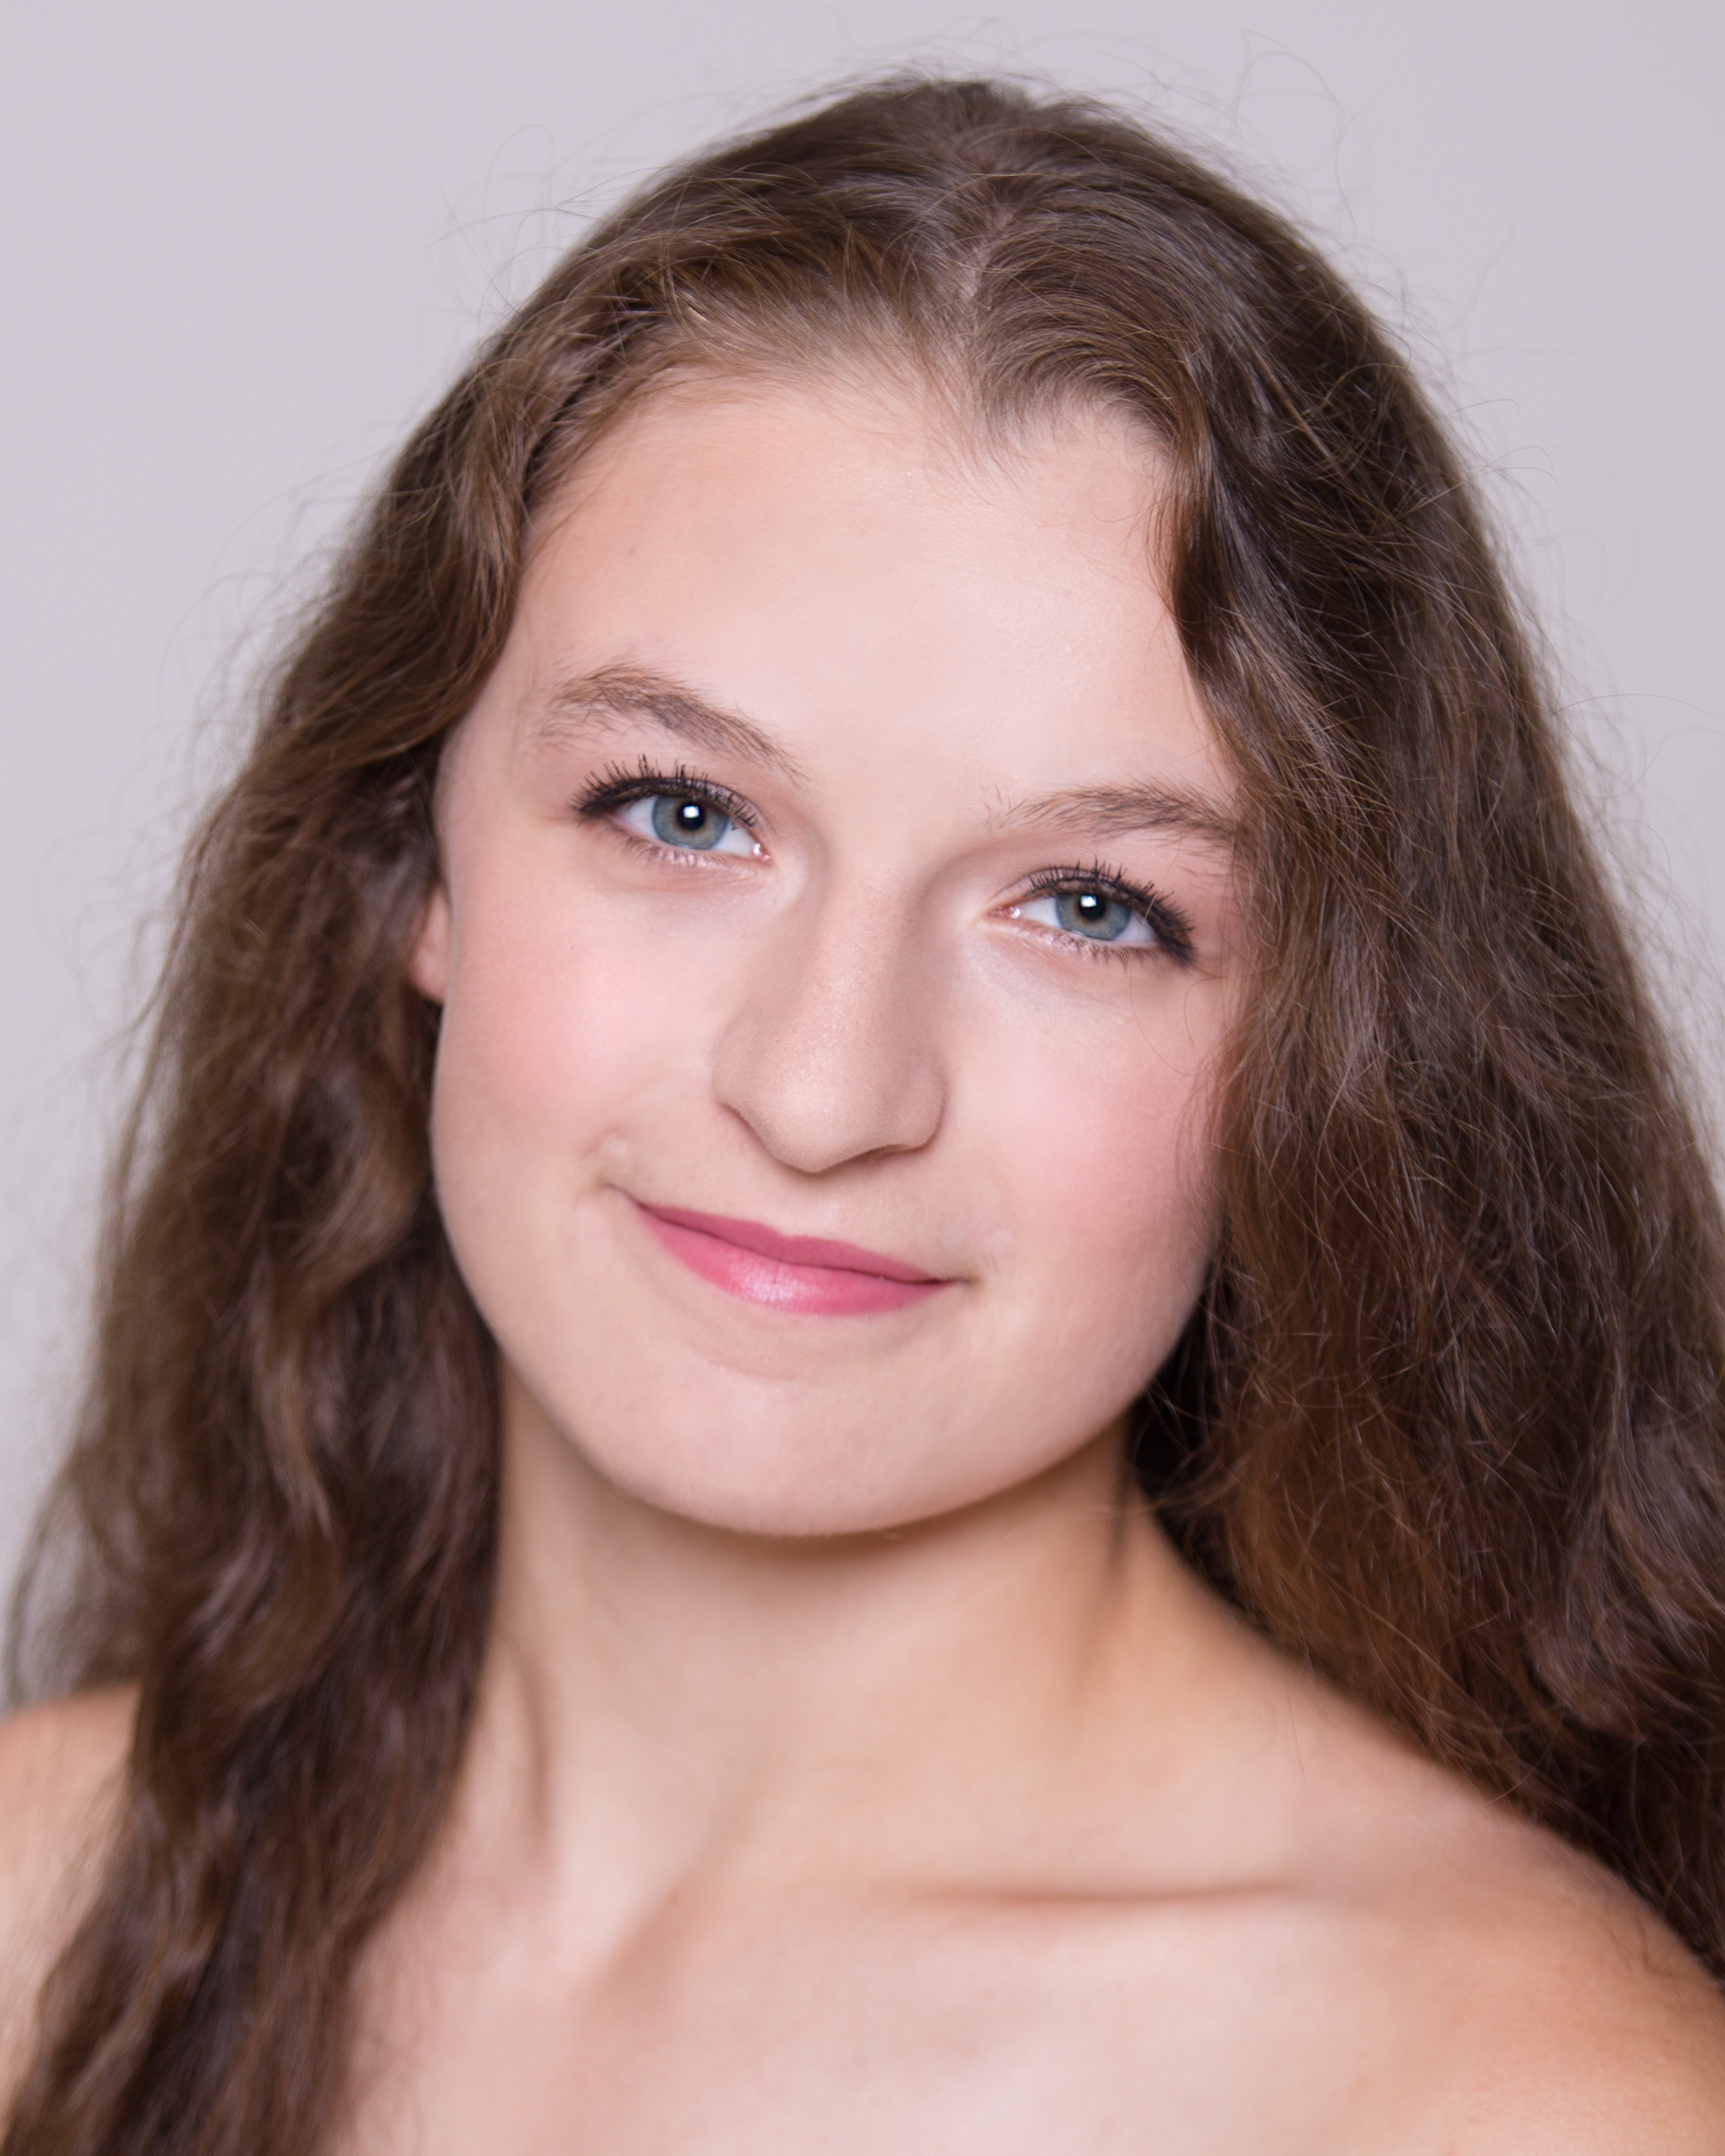 Libby DennenRehearsal Assistant -